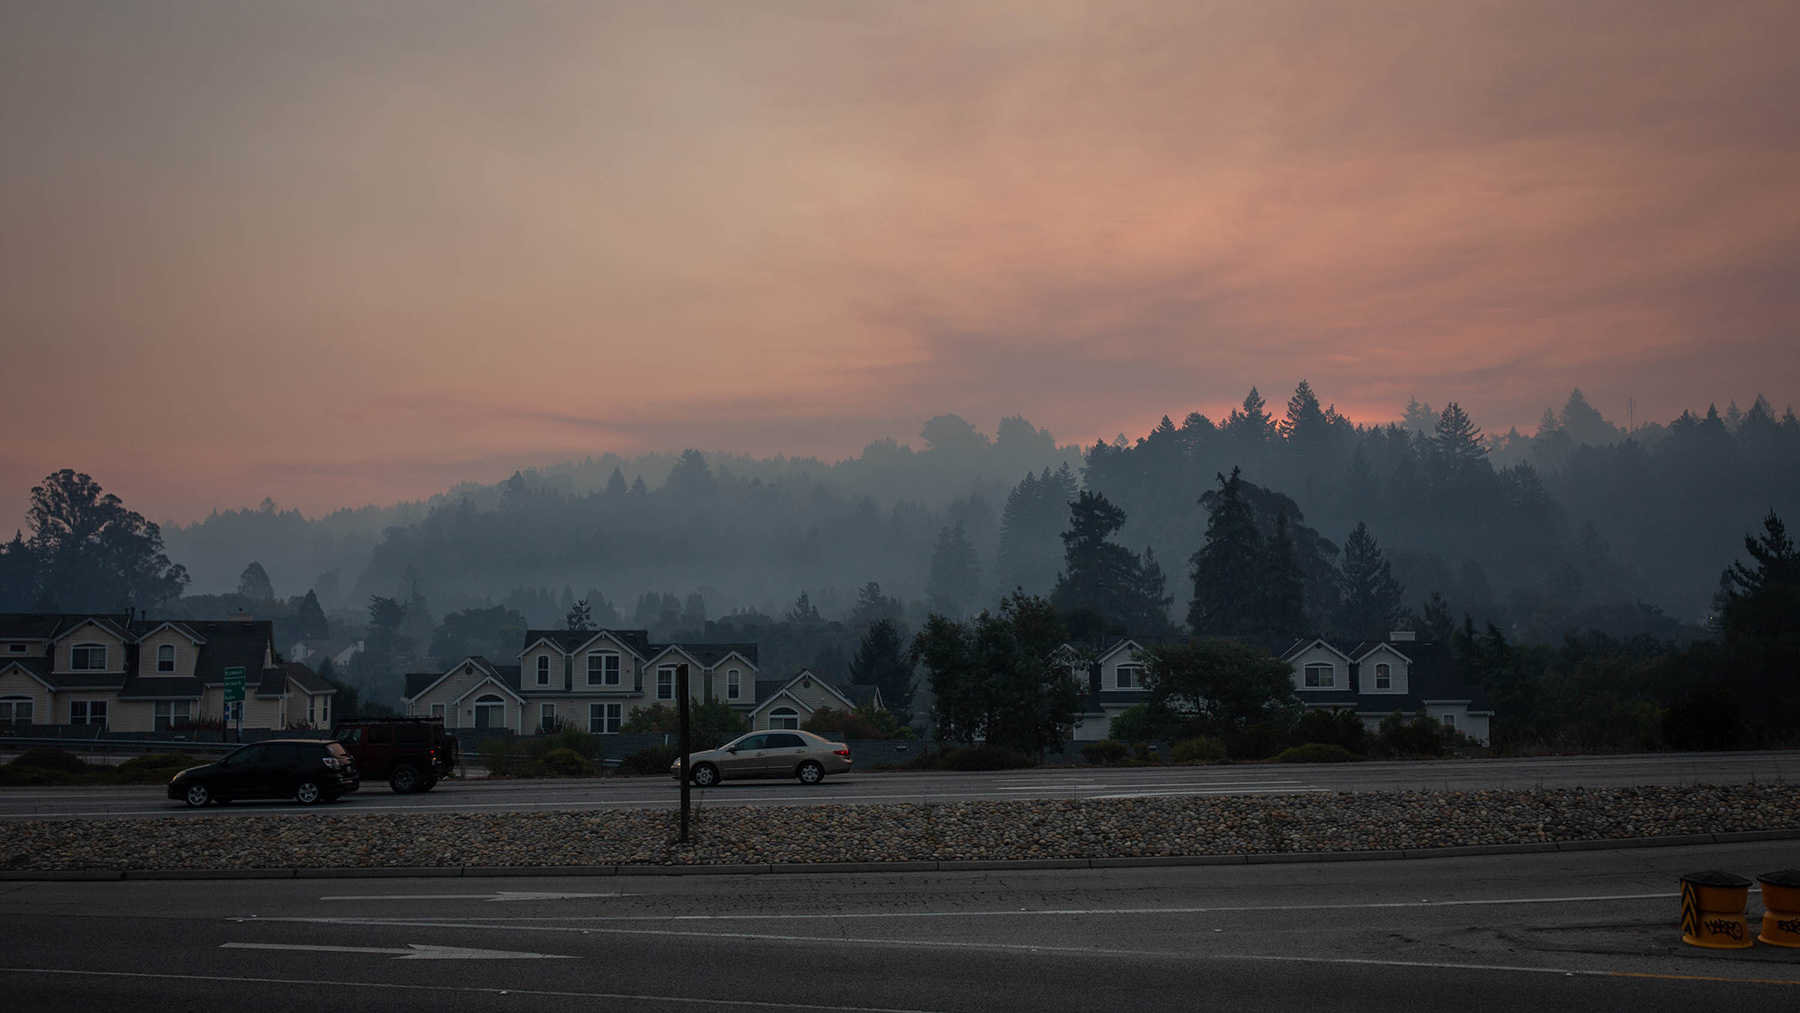 Smoke hangs over the city of Scotts Valley, California, in the Santa Cruz Mountains on Aug. 20, 2020. A series of fires, called the CZU Lightning Complex, have led to the evacuation of approximately 77,000 people from several mountain communities, including Scotts Valley, Boulder Creek and Bonny Doon. (Anna Maria Barry-Jester/KHN)